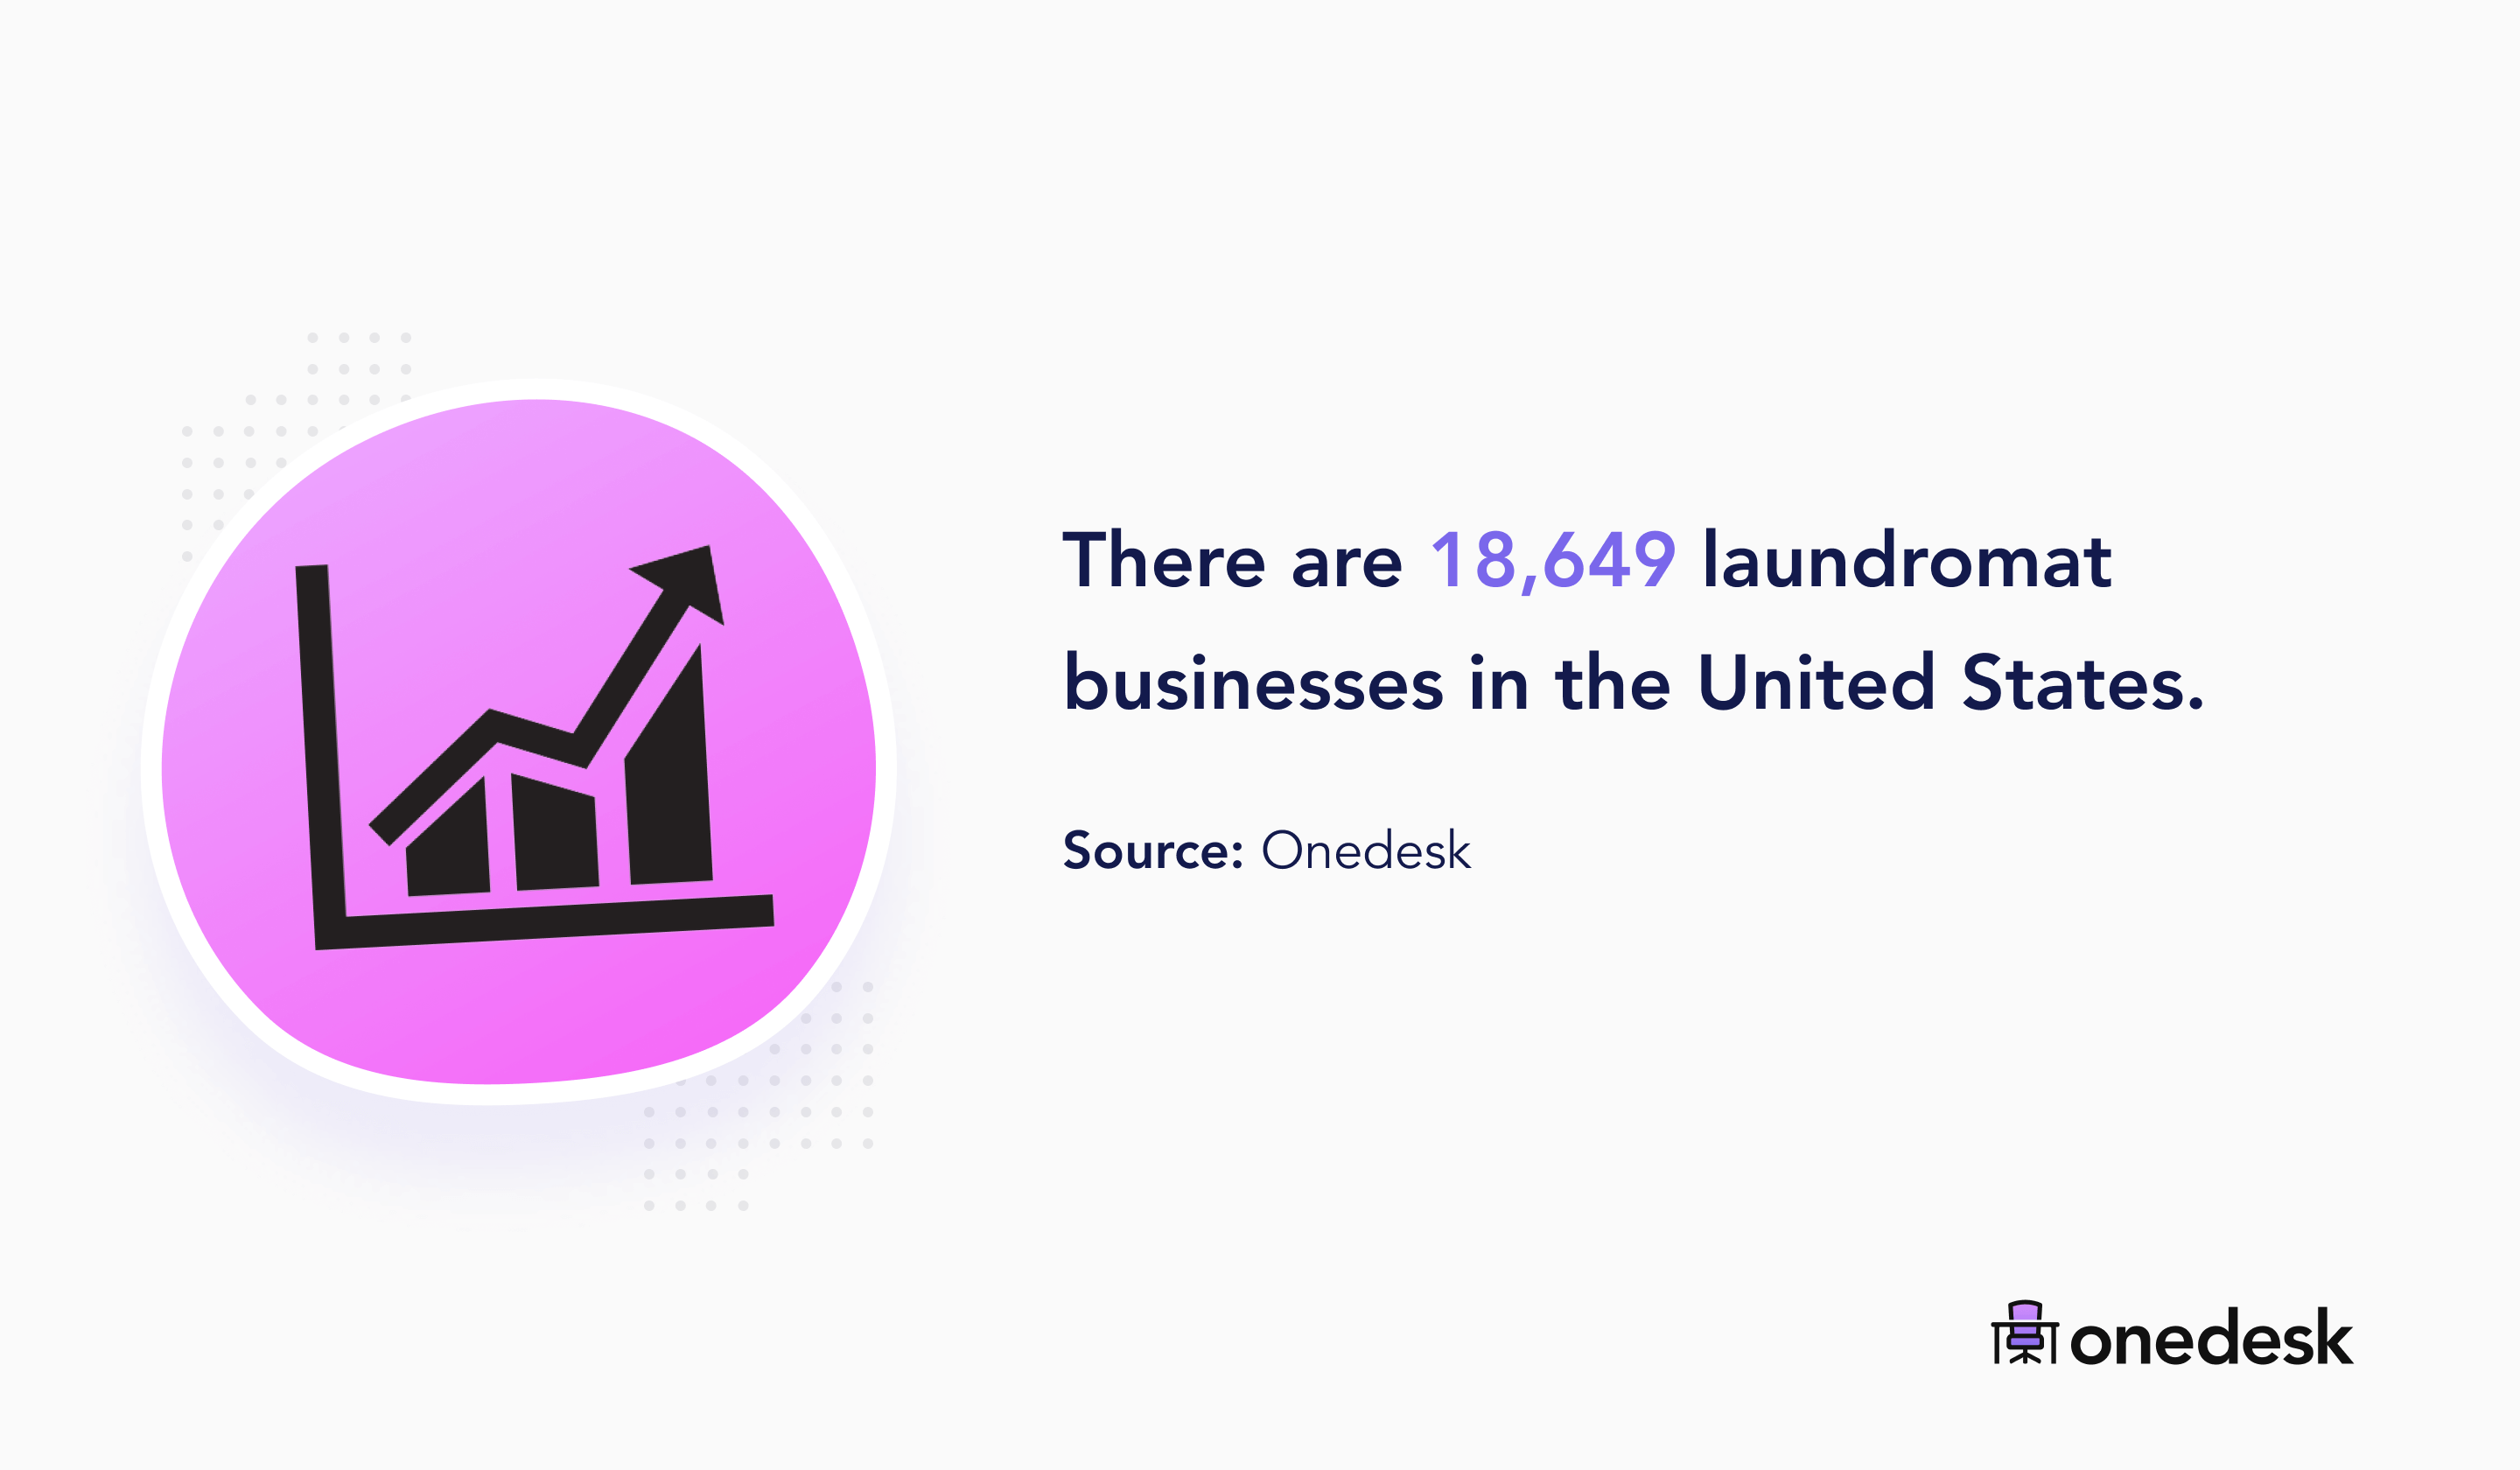 18,649 laundromat businesses in the USA